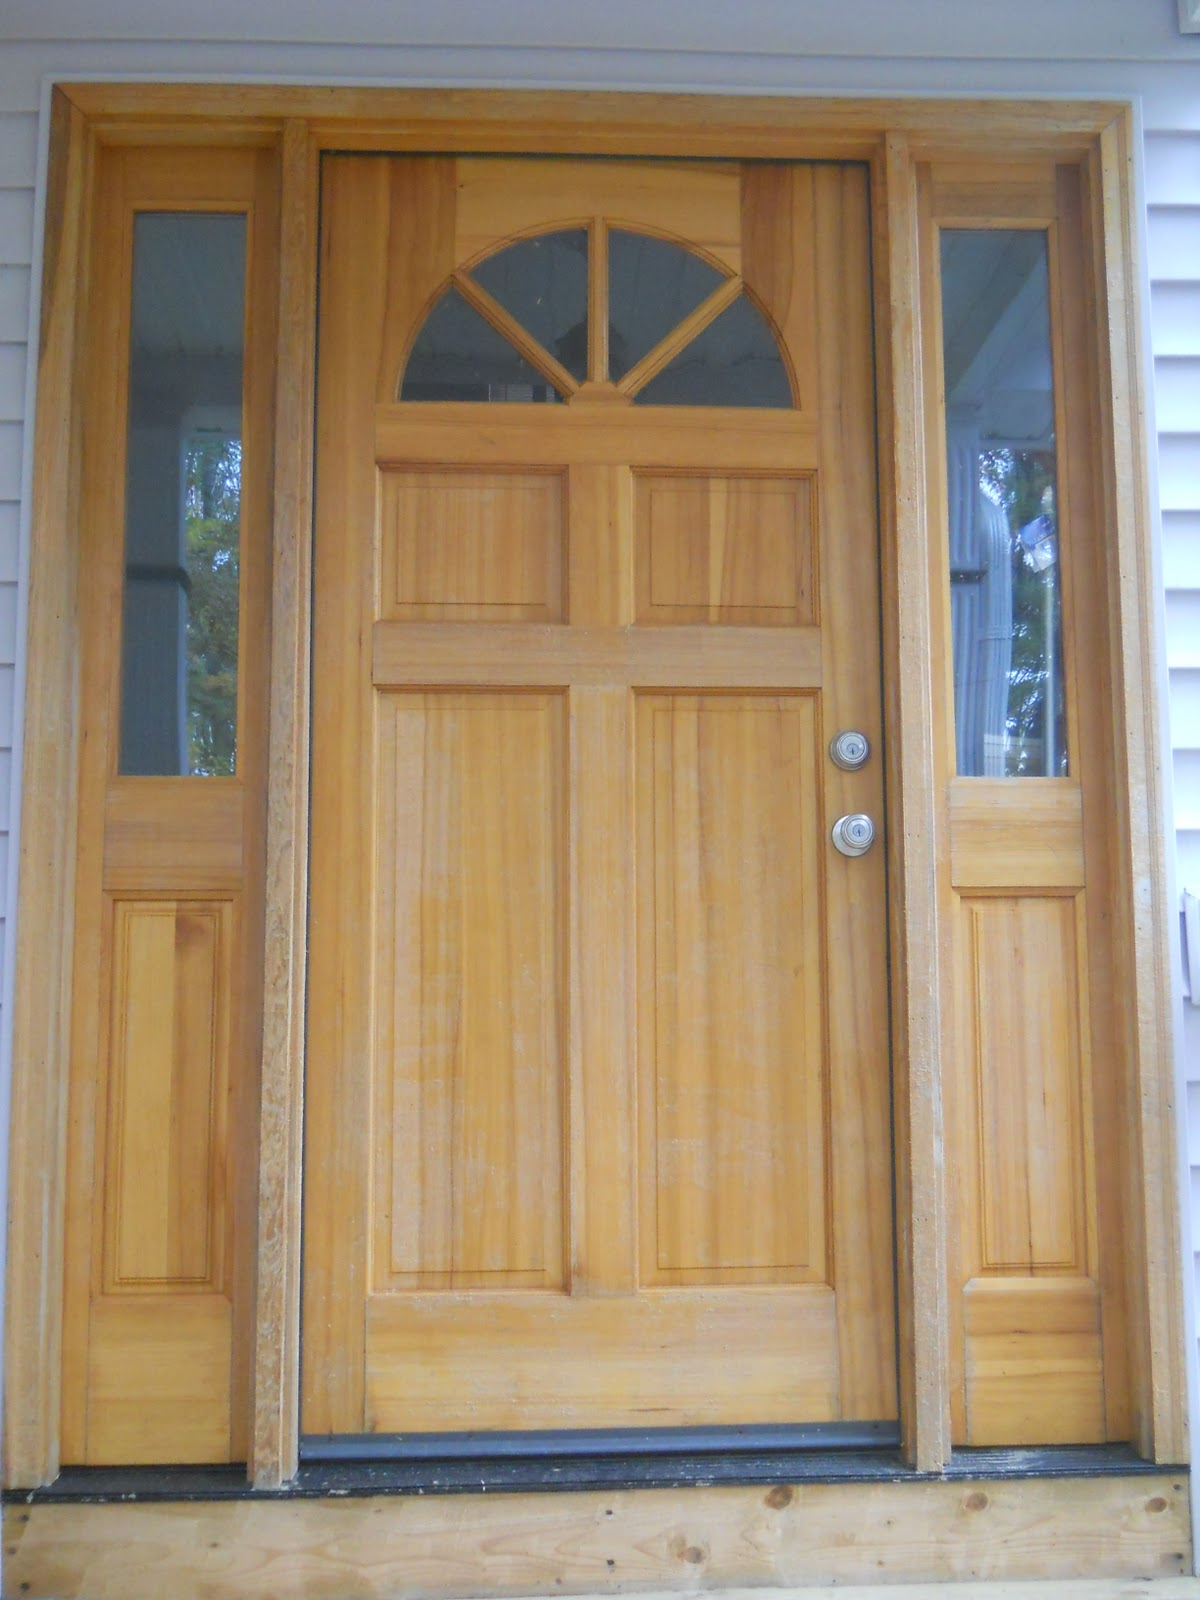 Projects: New life for a tired front door